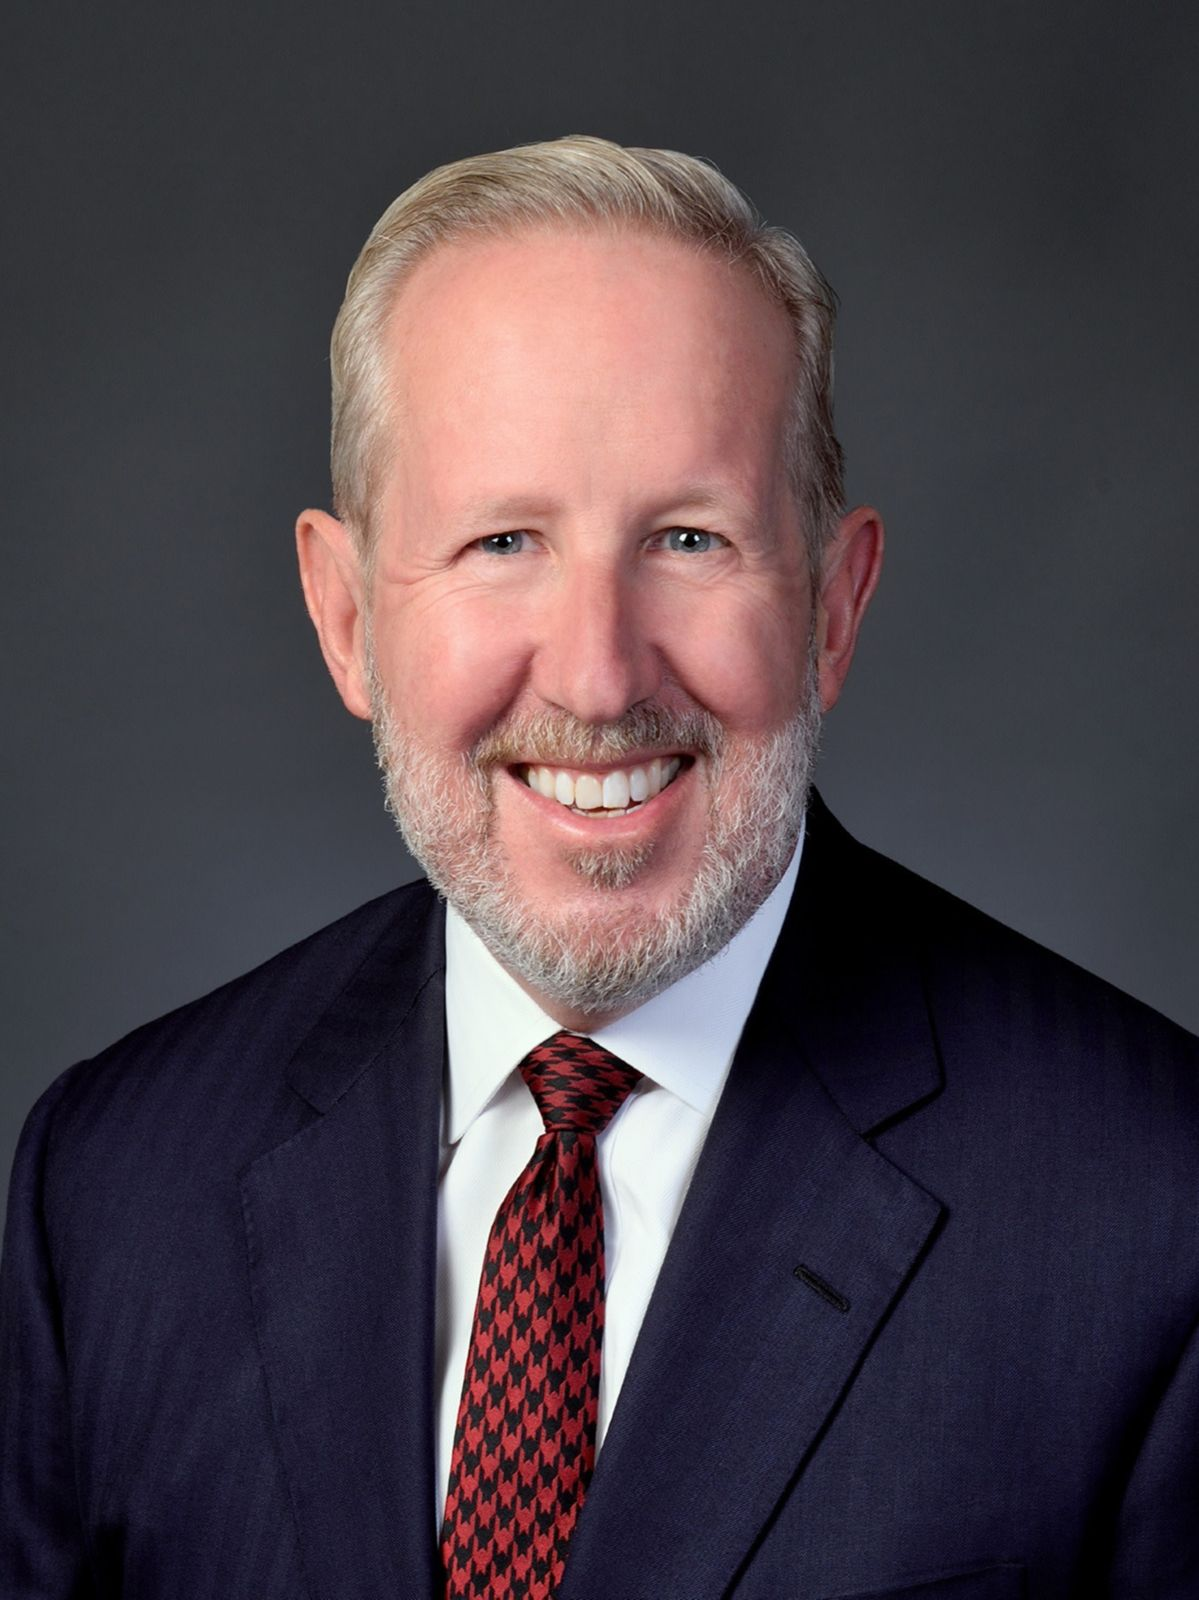 AACC Names Mark J. Golden as Next CEO, American Association for Clinical Chemistry